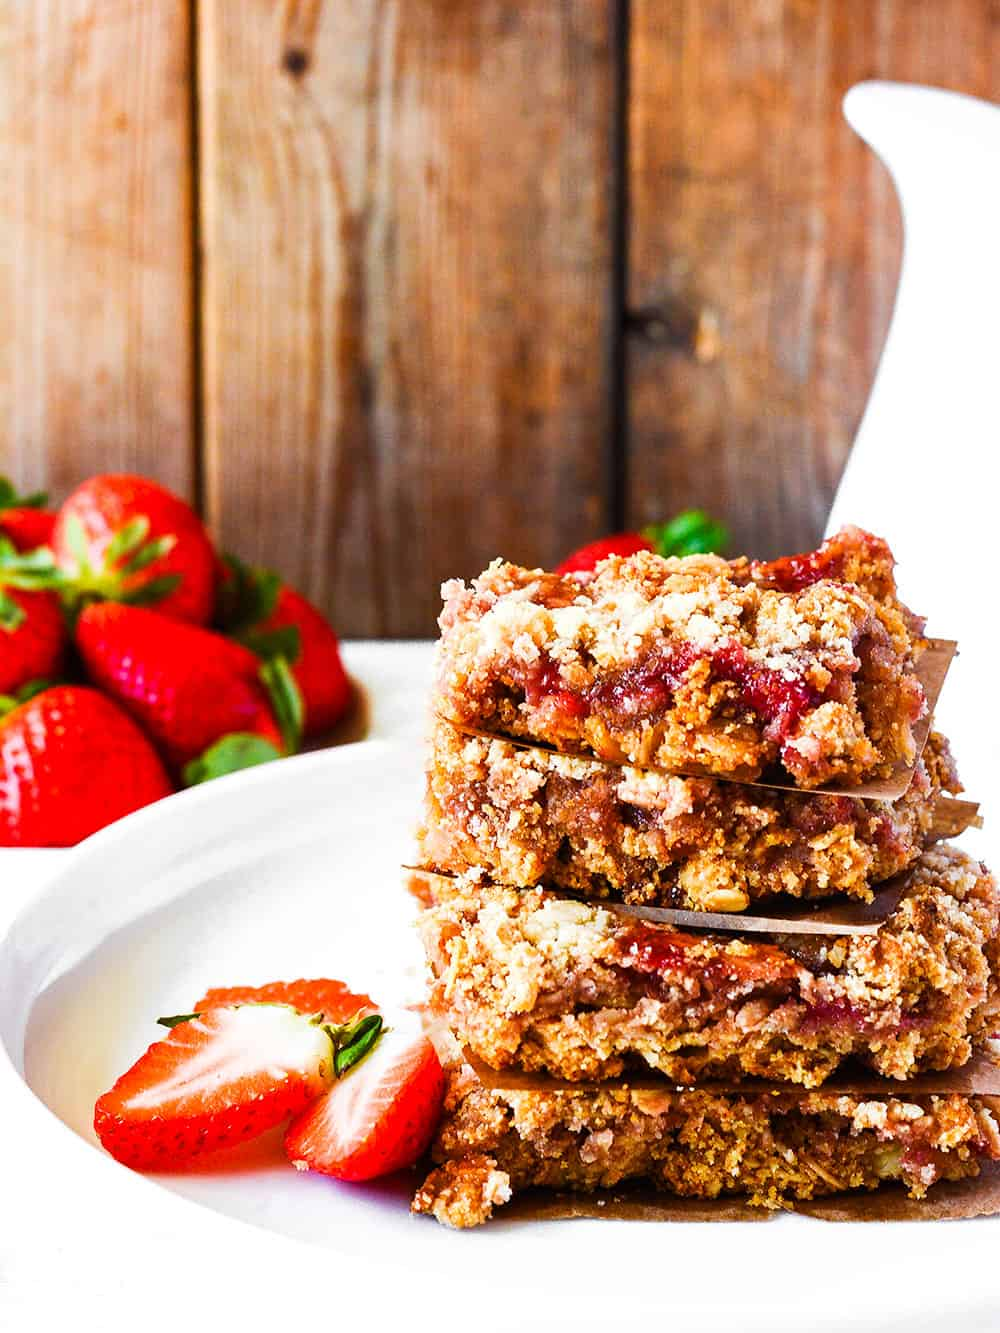 Gluten-Free Vegan Strawberry Oat Bars